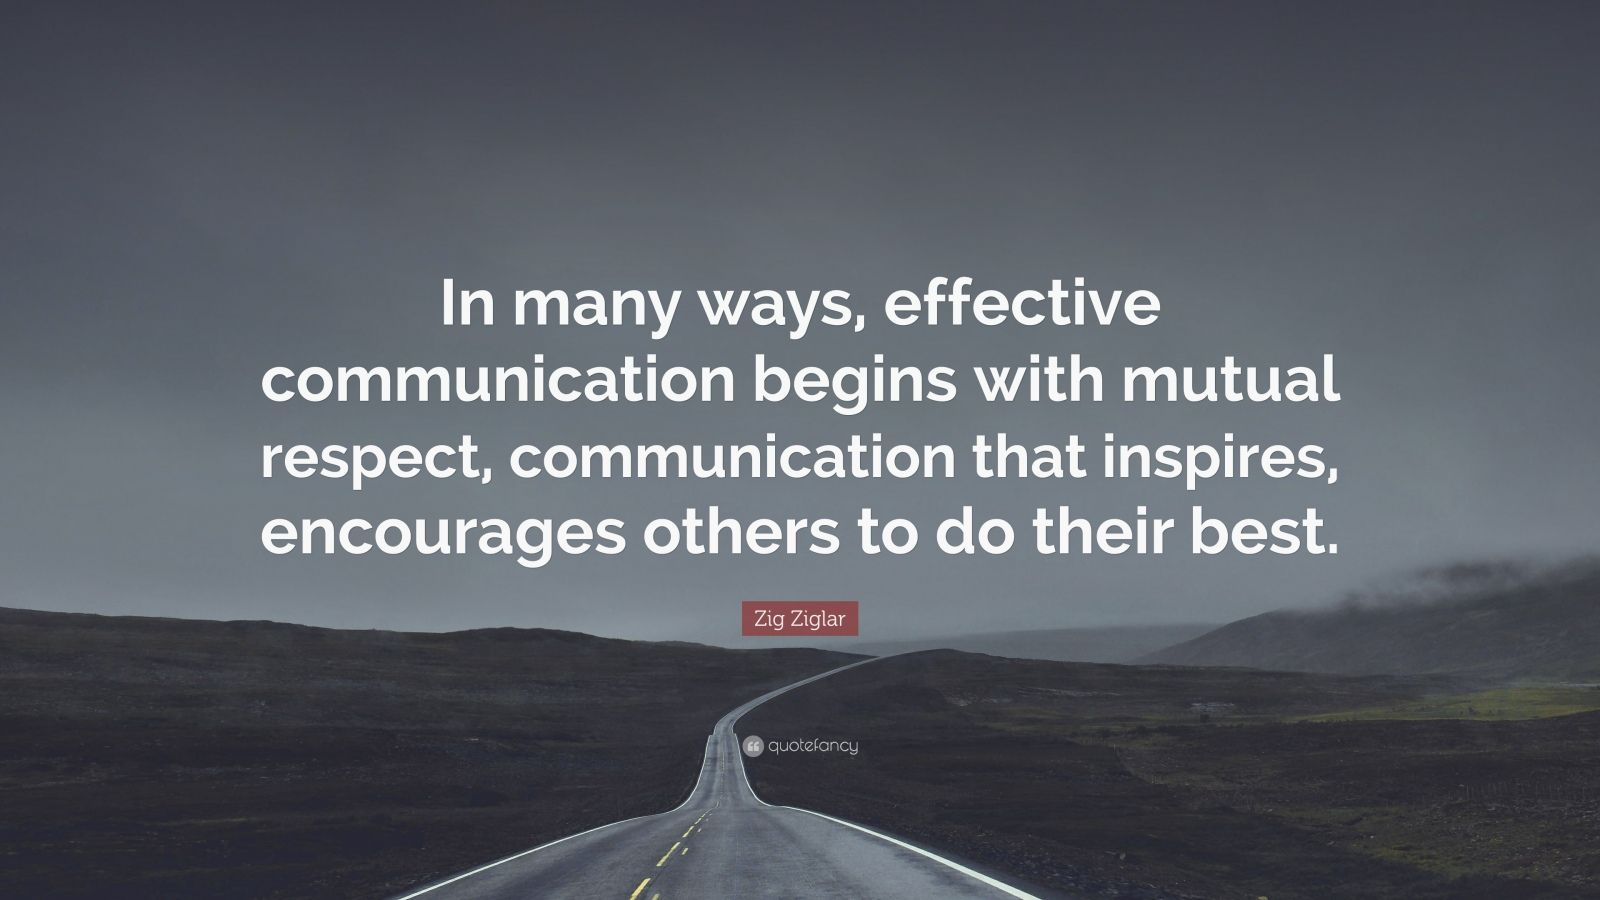 """Zig Ziglar Quote: """"In many ways, effective communication begins with mutual respect, communication that inspires, encourages others to do their best."""""""